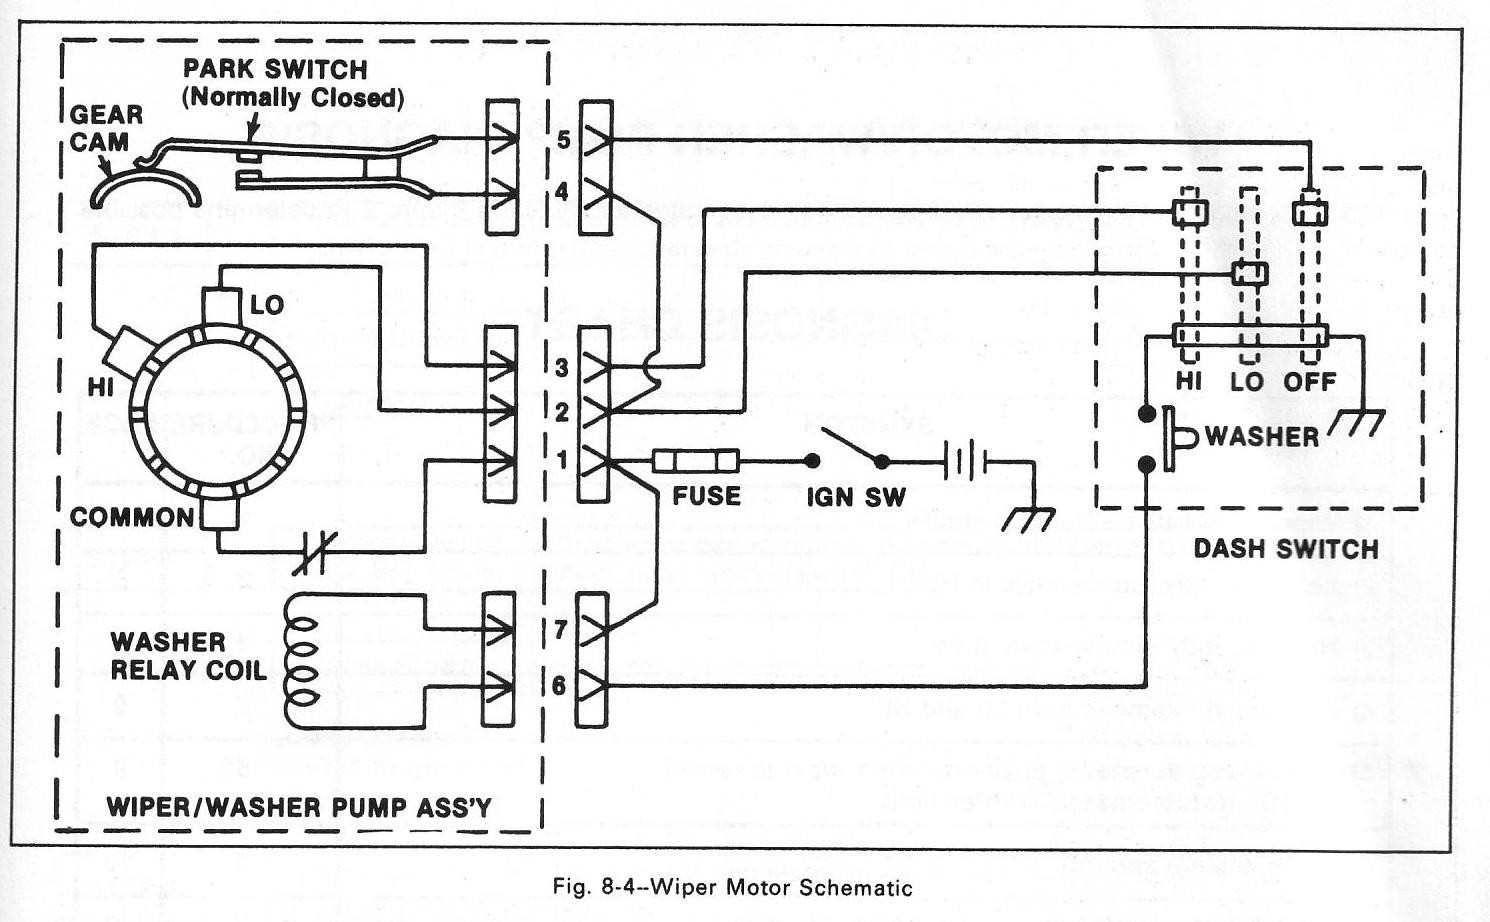 wiper motor wiring diagram chevrolet 2000 7 3 powerstroke glow plug relay 1980 chevy all data diagrams hubs 67 firebird